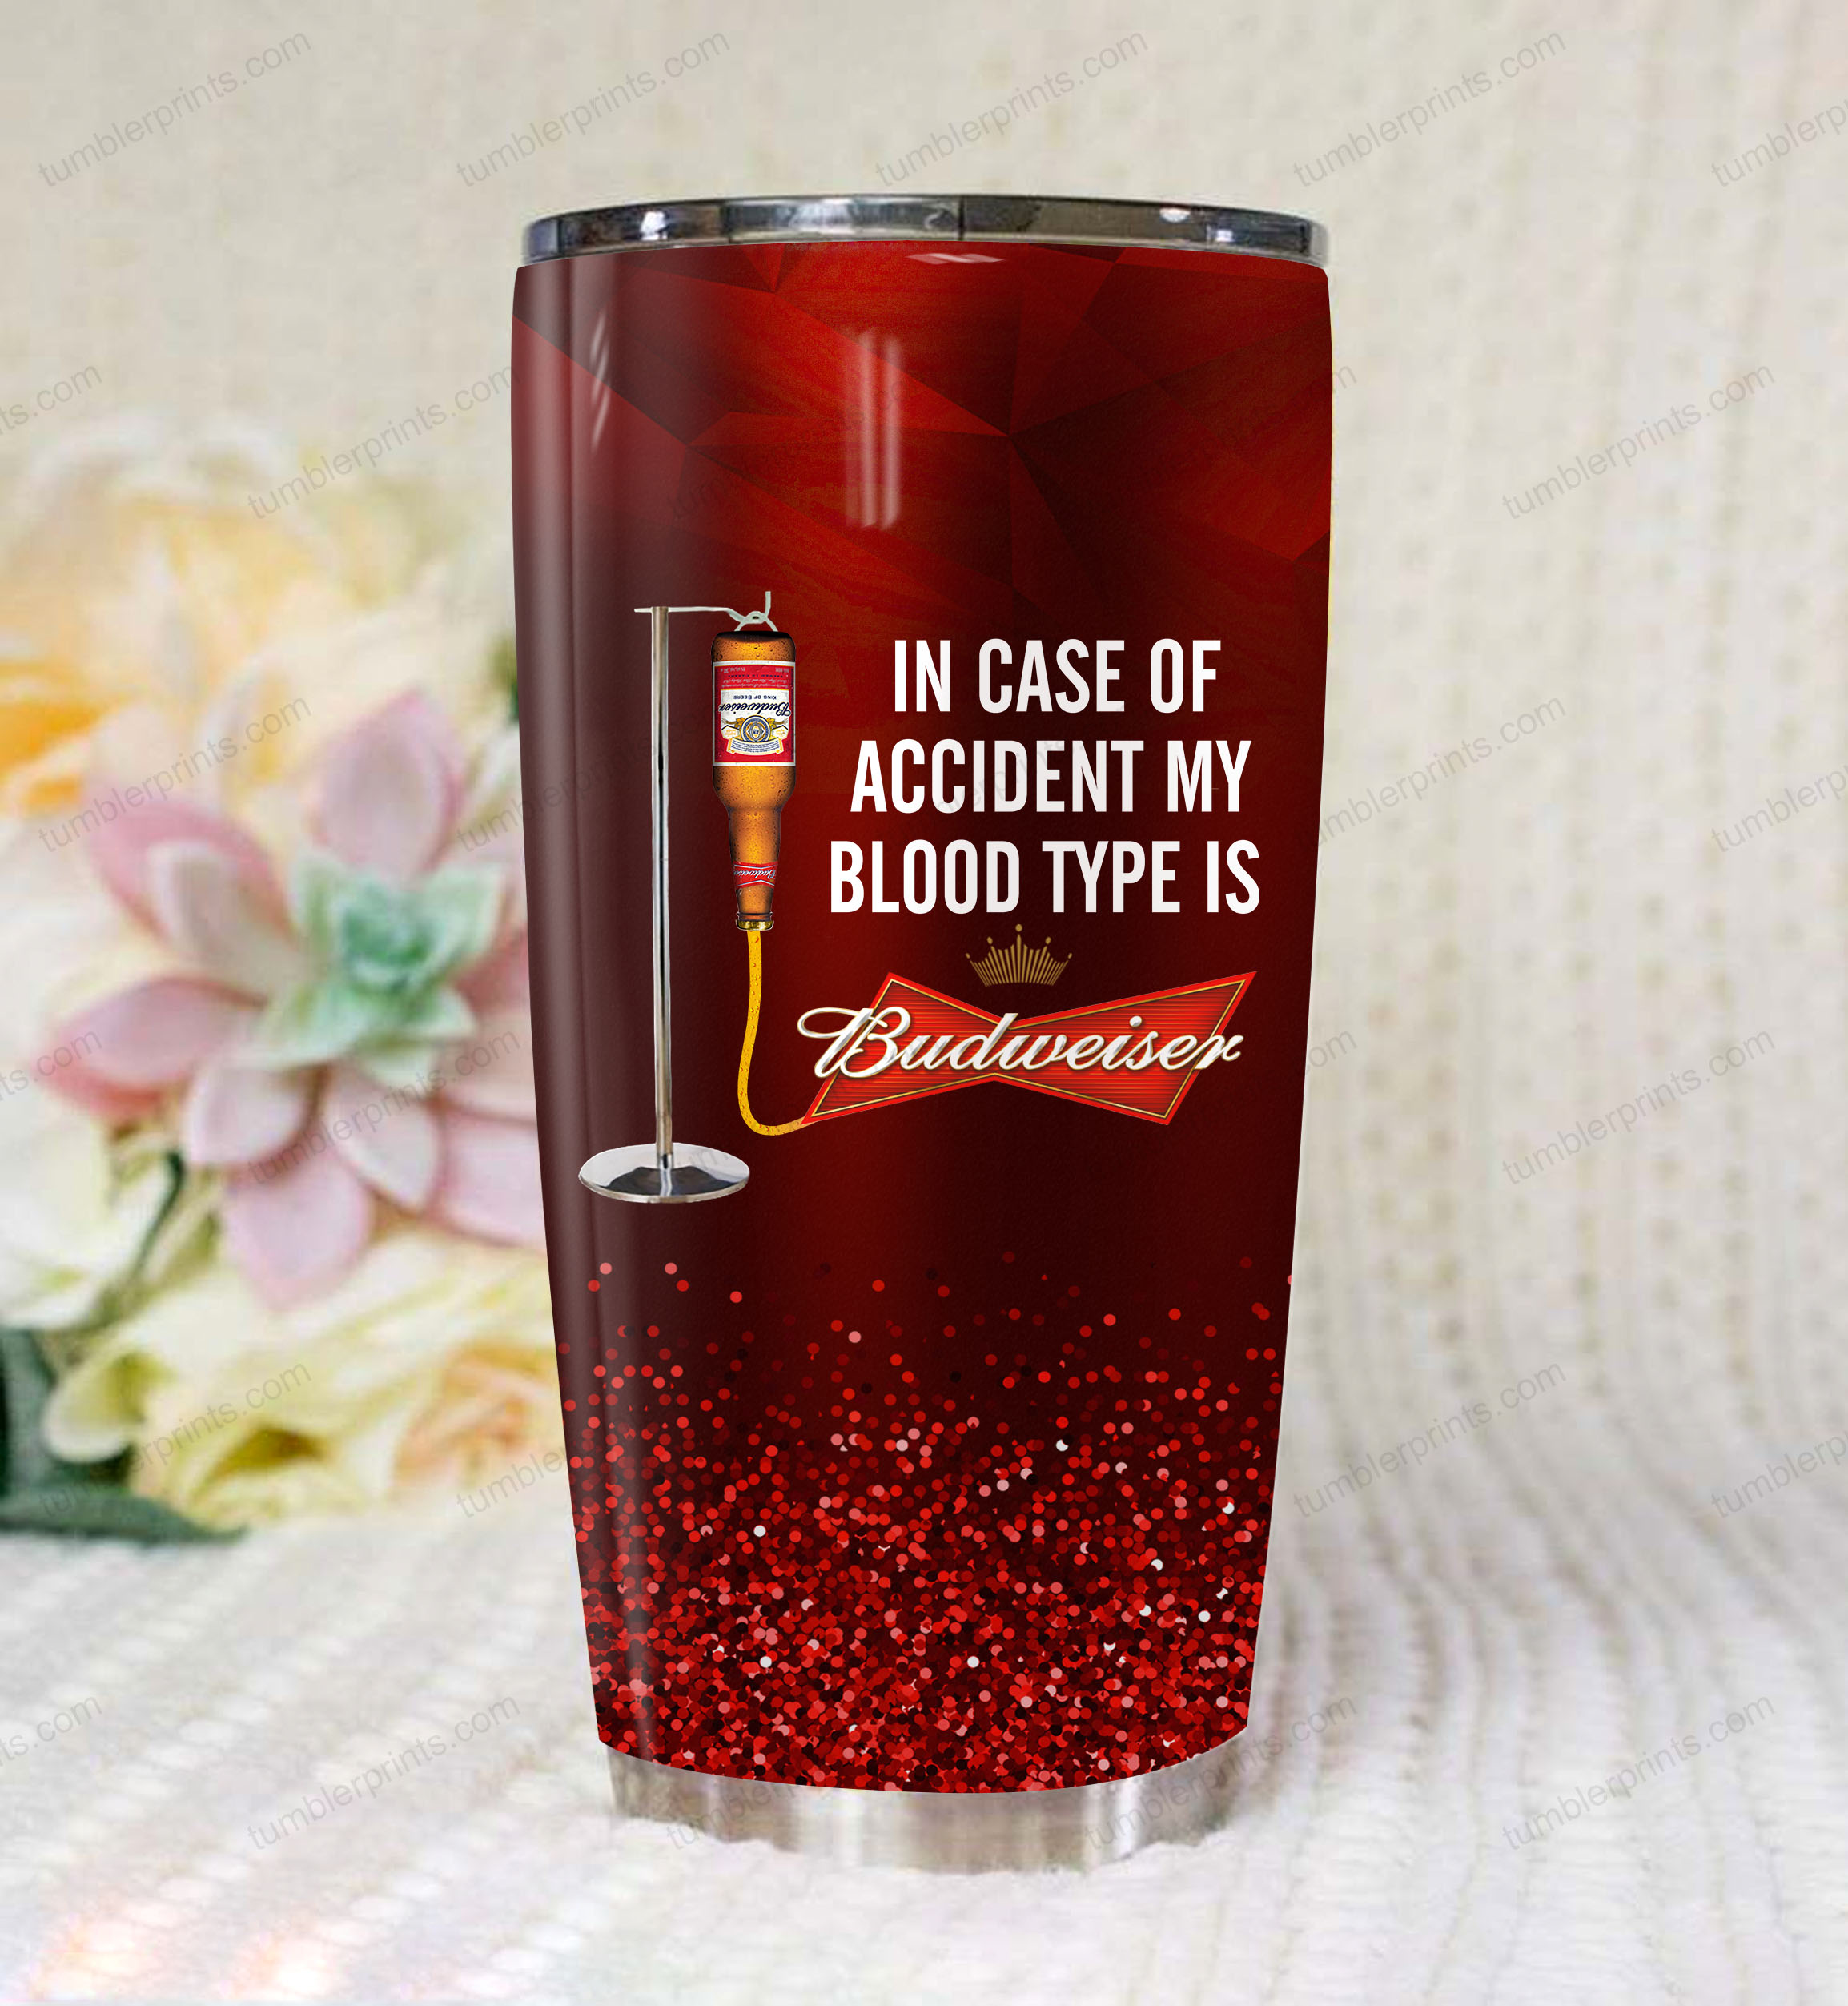 In case of an accident my blood type is budweiser full printing tumbler 3